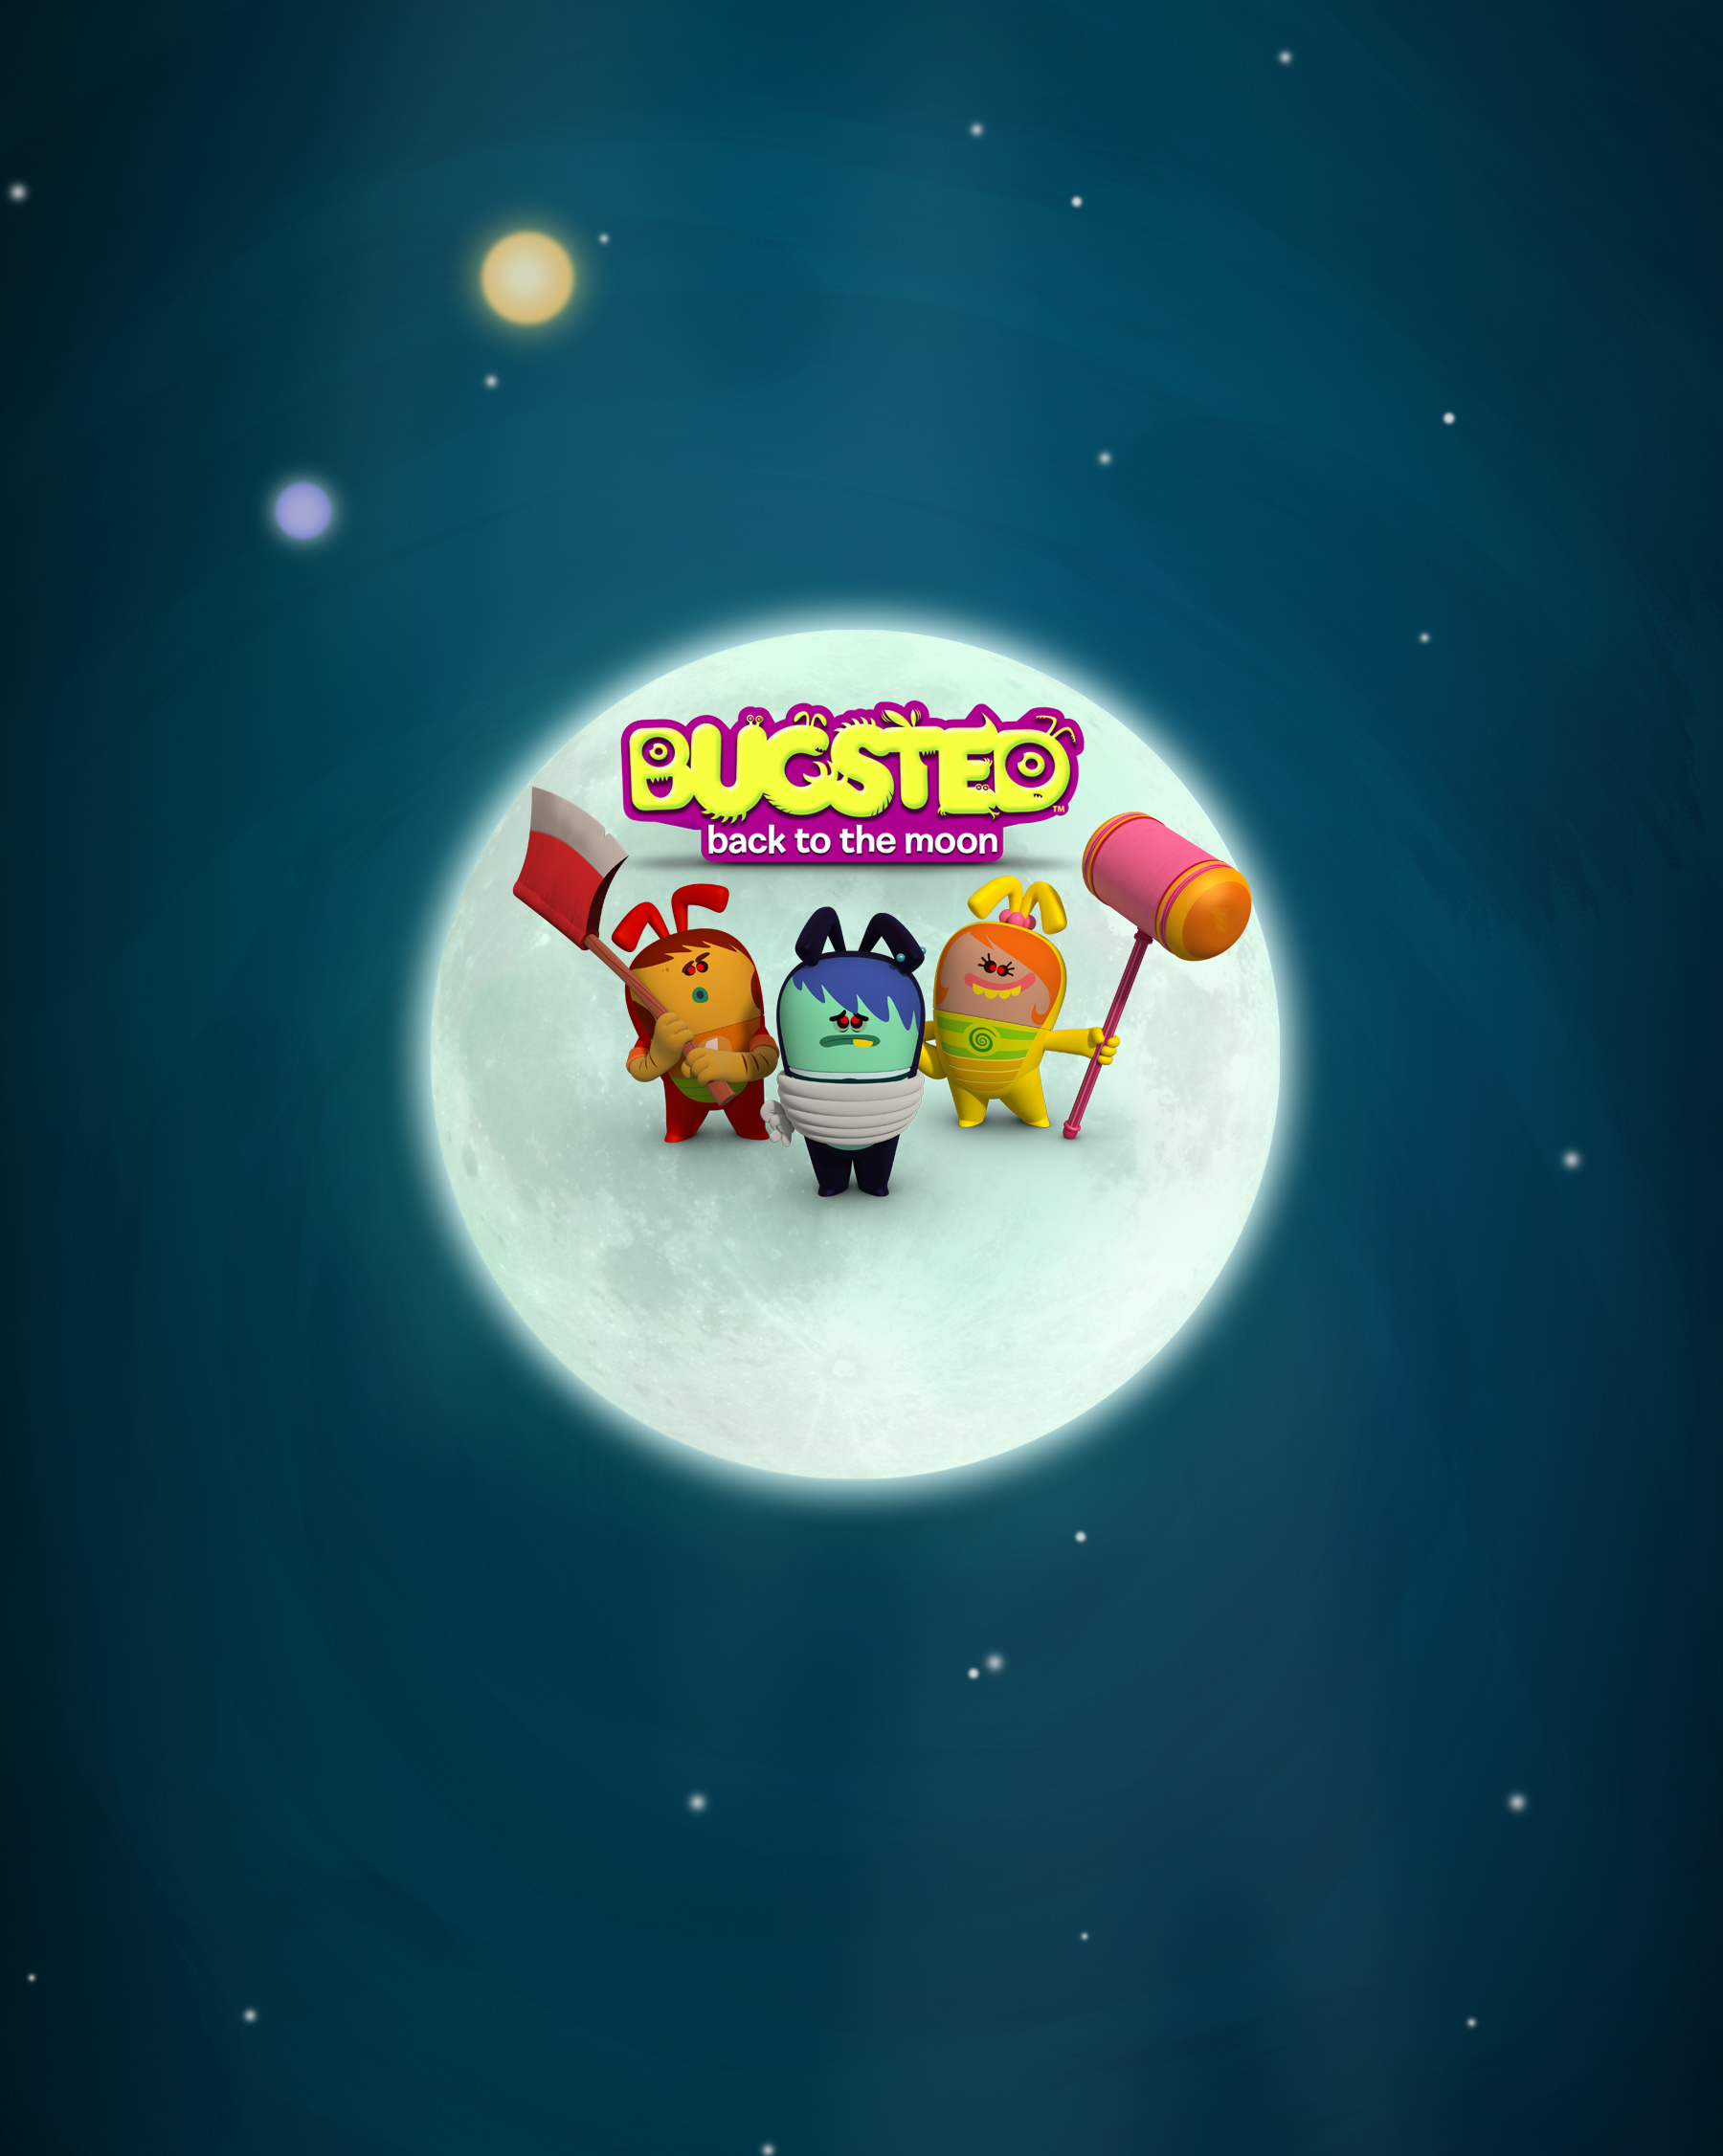 Bugsted: Regreso a la luna